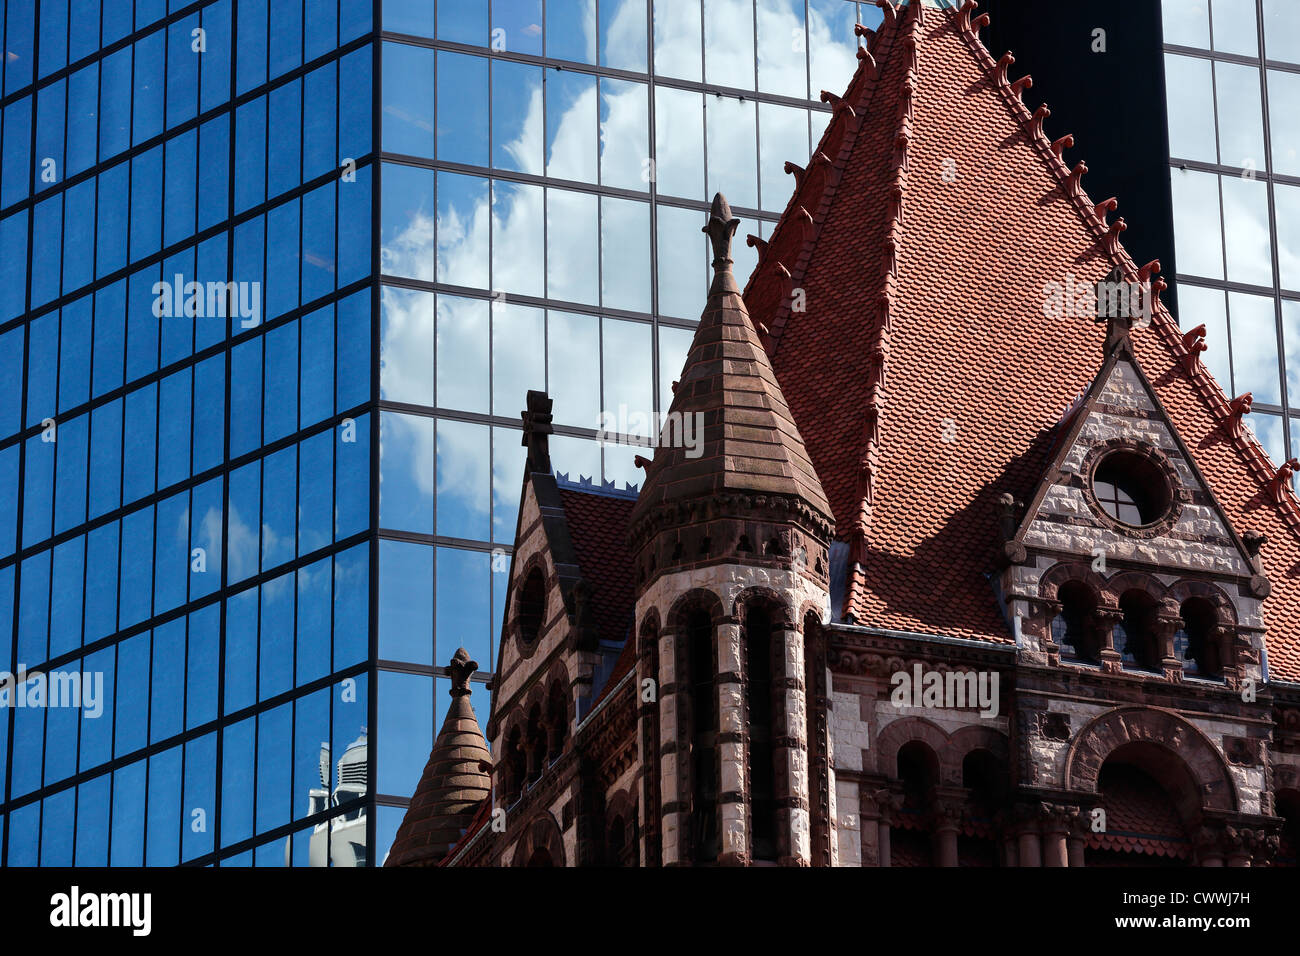 Trinity Church and reflective glass of the Hancock Tower in Boston, Massachusetts - Stock Image